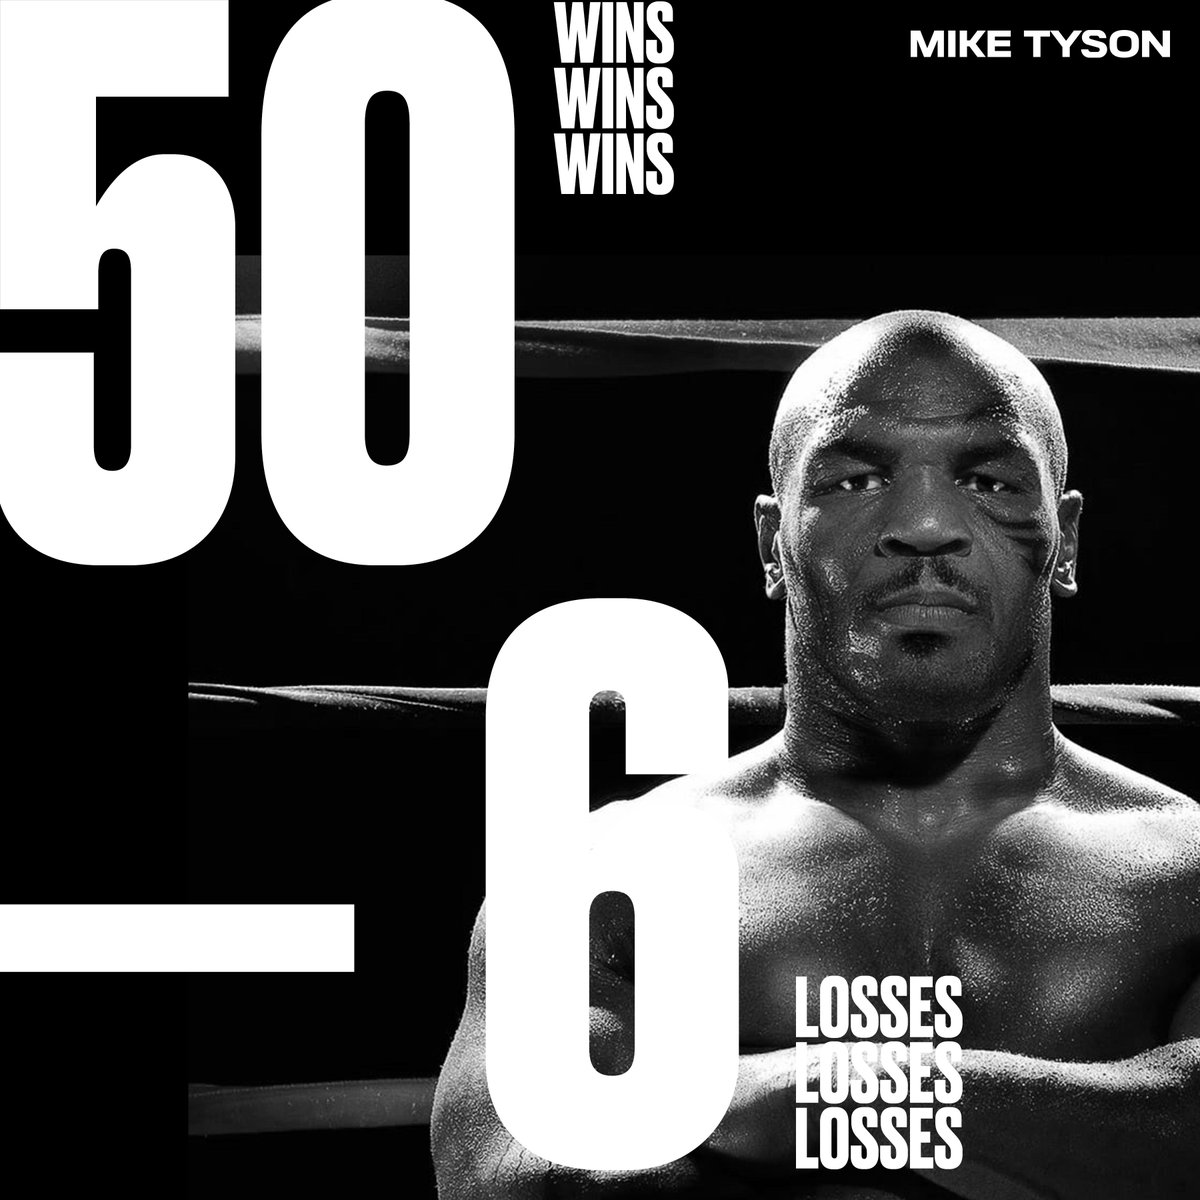 Without losses you can't really truly appreciate victory. #miketyson https://t.co/5Z5cmdUyBN